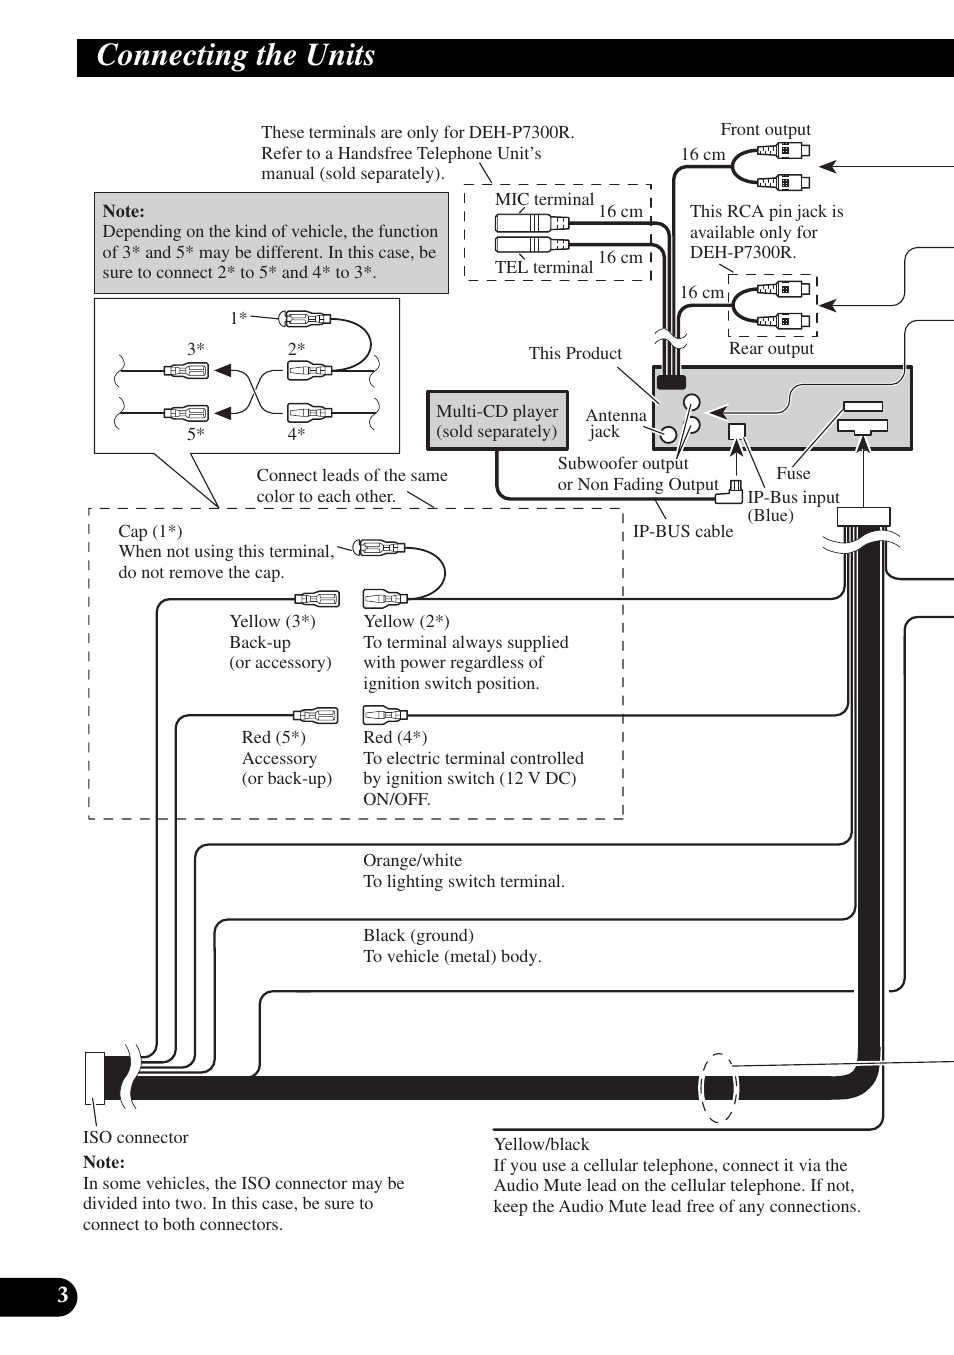 Connecting the units | Pioneer DEH-P6300R User Manual | Page 4 / 52